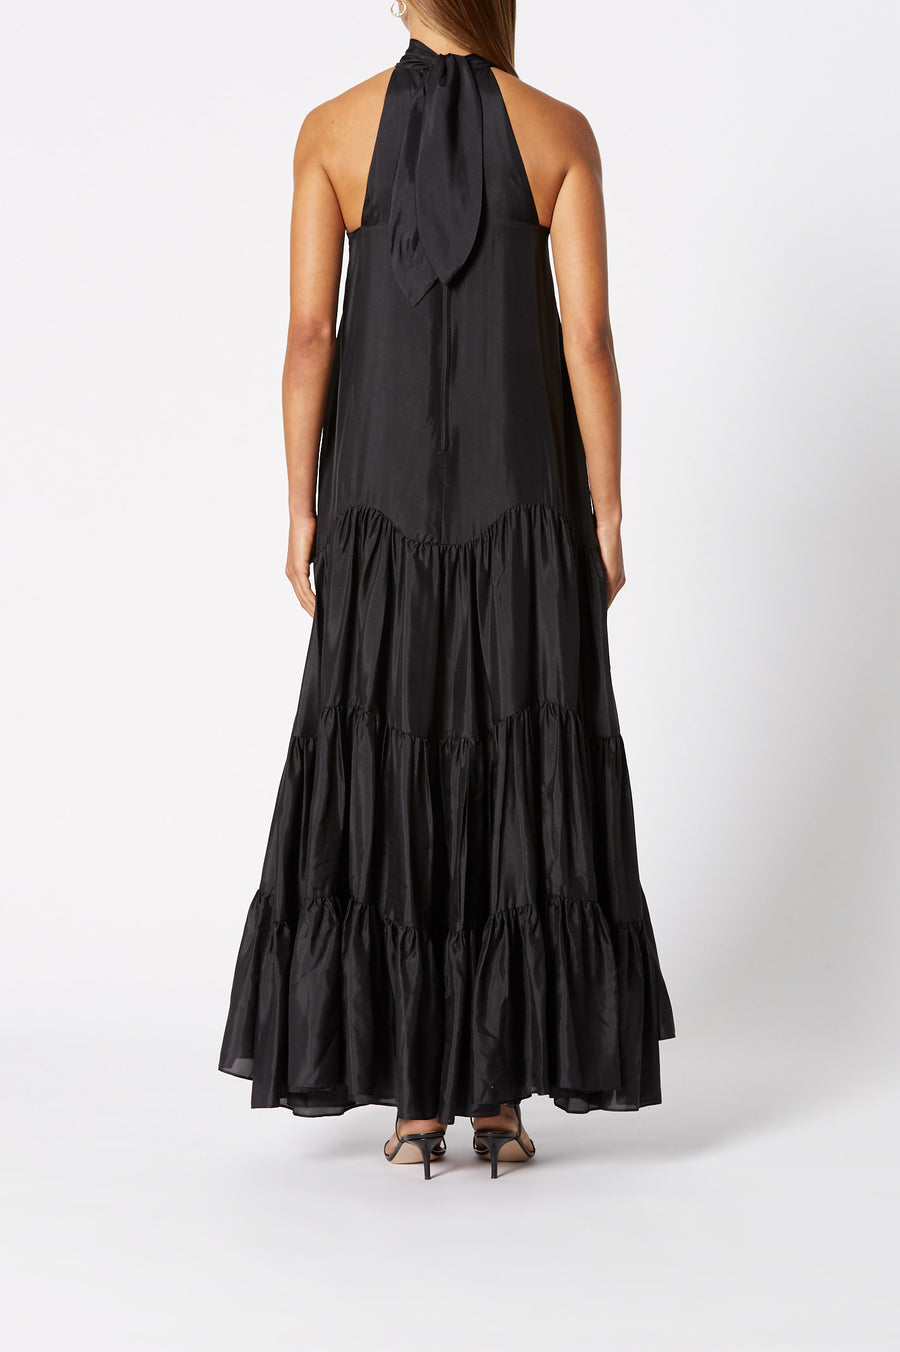 Silk Ruffle Hem Dress Black, Back Zip Closure, Tie neck, Maxi length, back keyhole opening